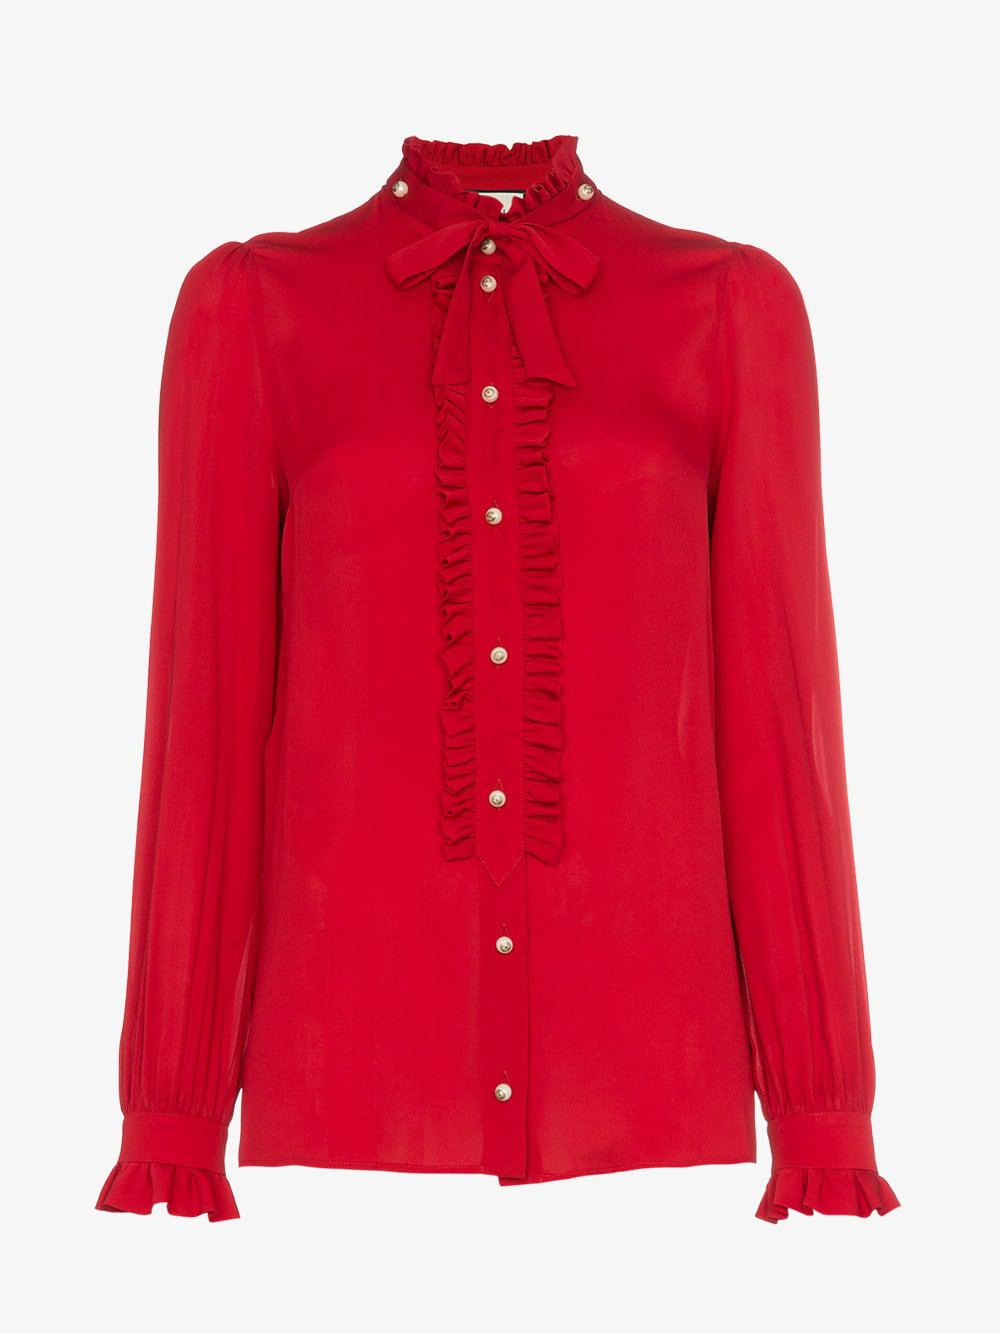 55ac63c7d7c84 Gucci Silk Ruffle Front Blouse in Red - Lyst